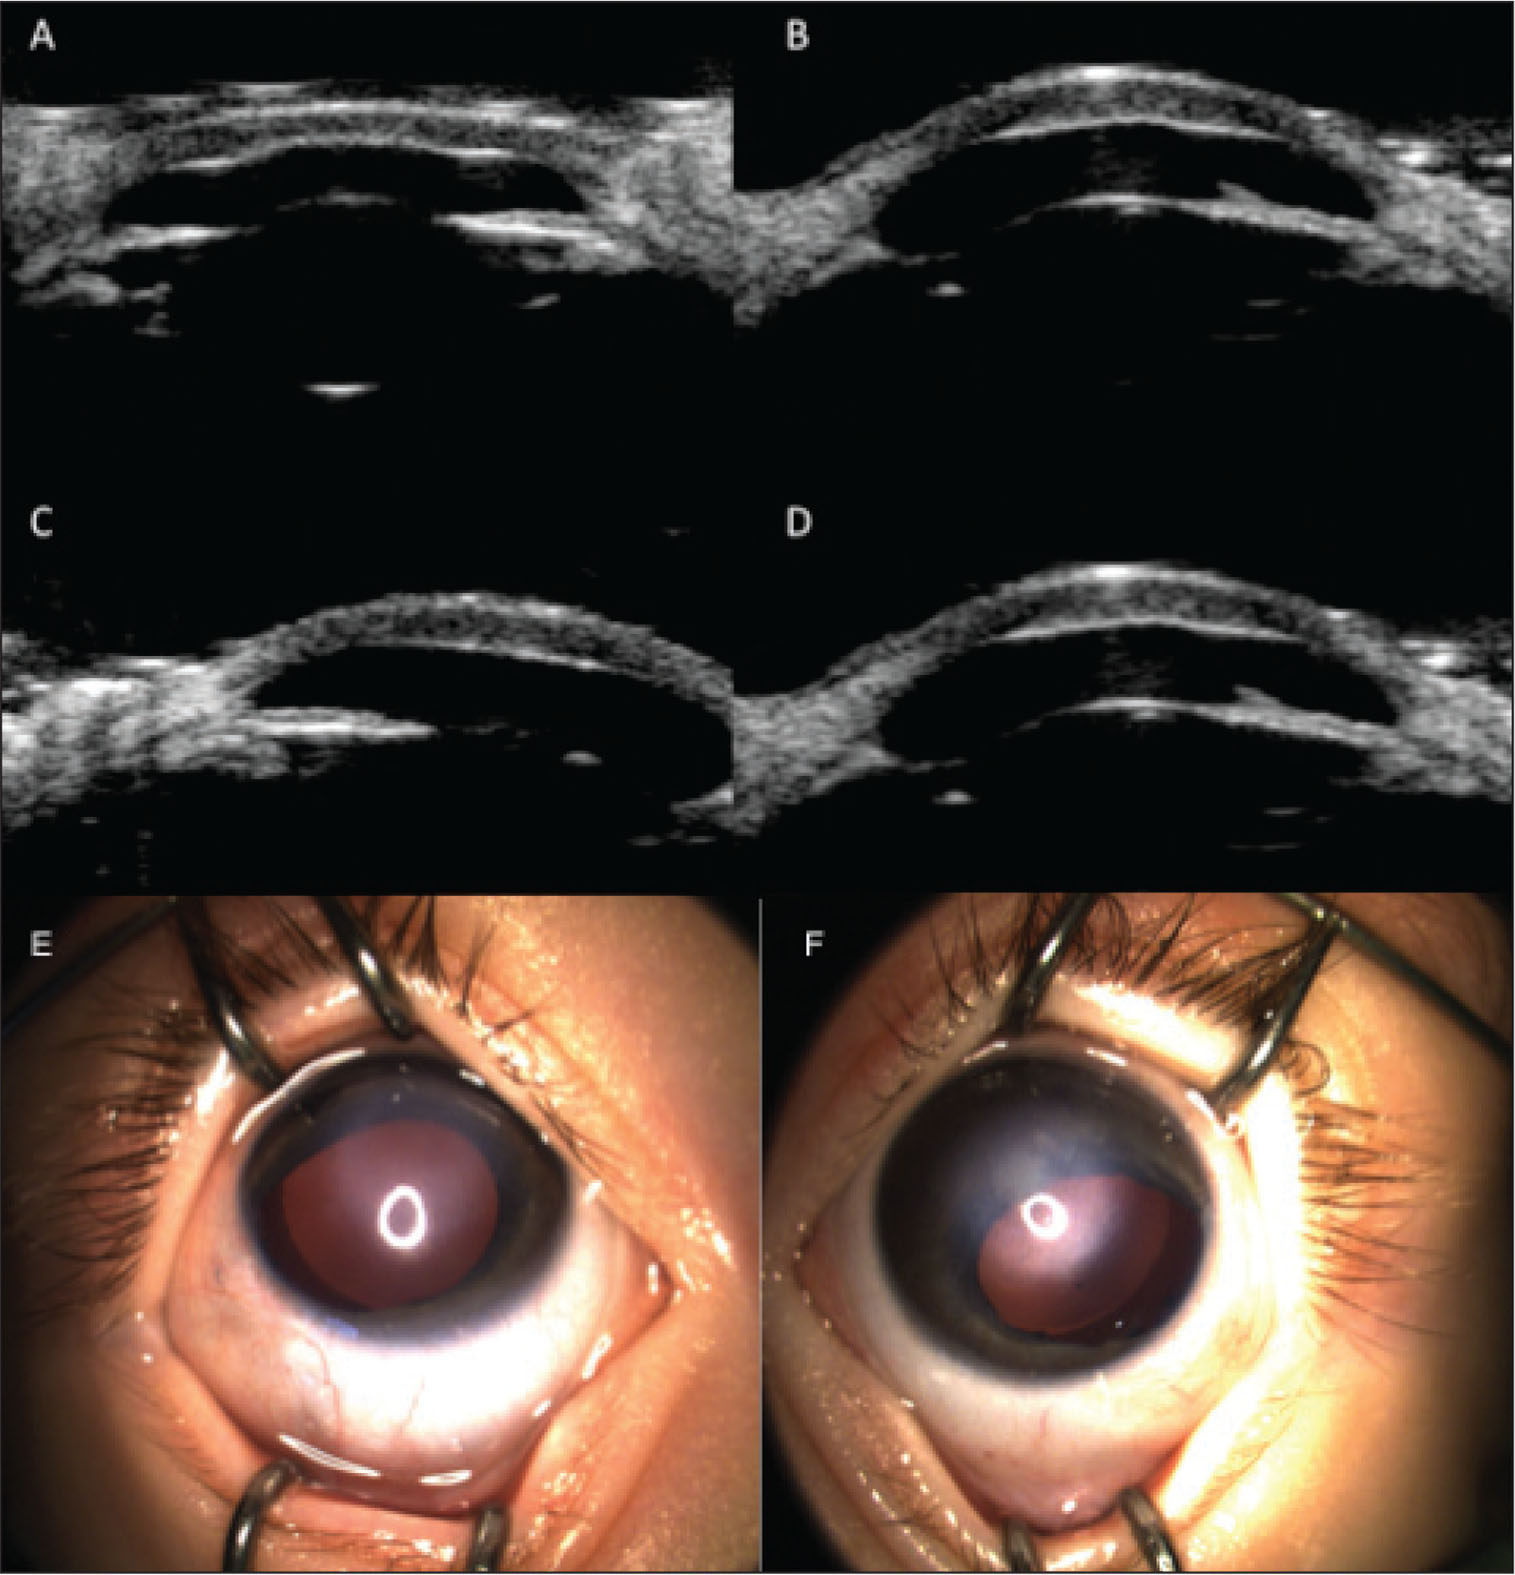 Postoperative ultrasound biomicroscopy images showing resolution of iridocorneal adhesions and decrease in central corneal thickness in the (A and B) right and (C and D) left eyes. Postoperative external photography showing clearing of central corneal opacities in the (E) right and (F) left eyes.